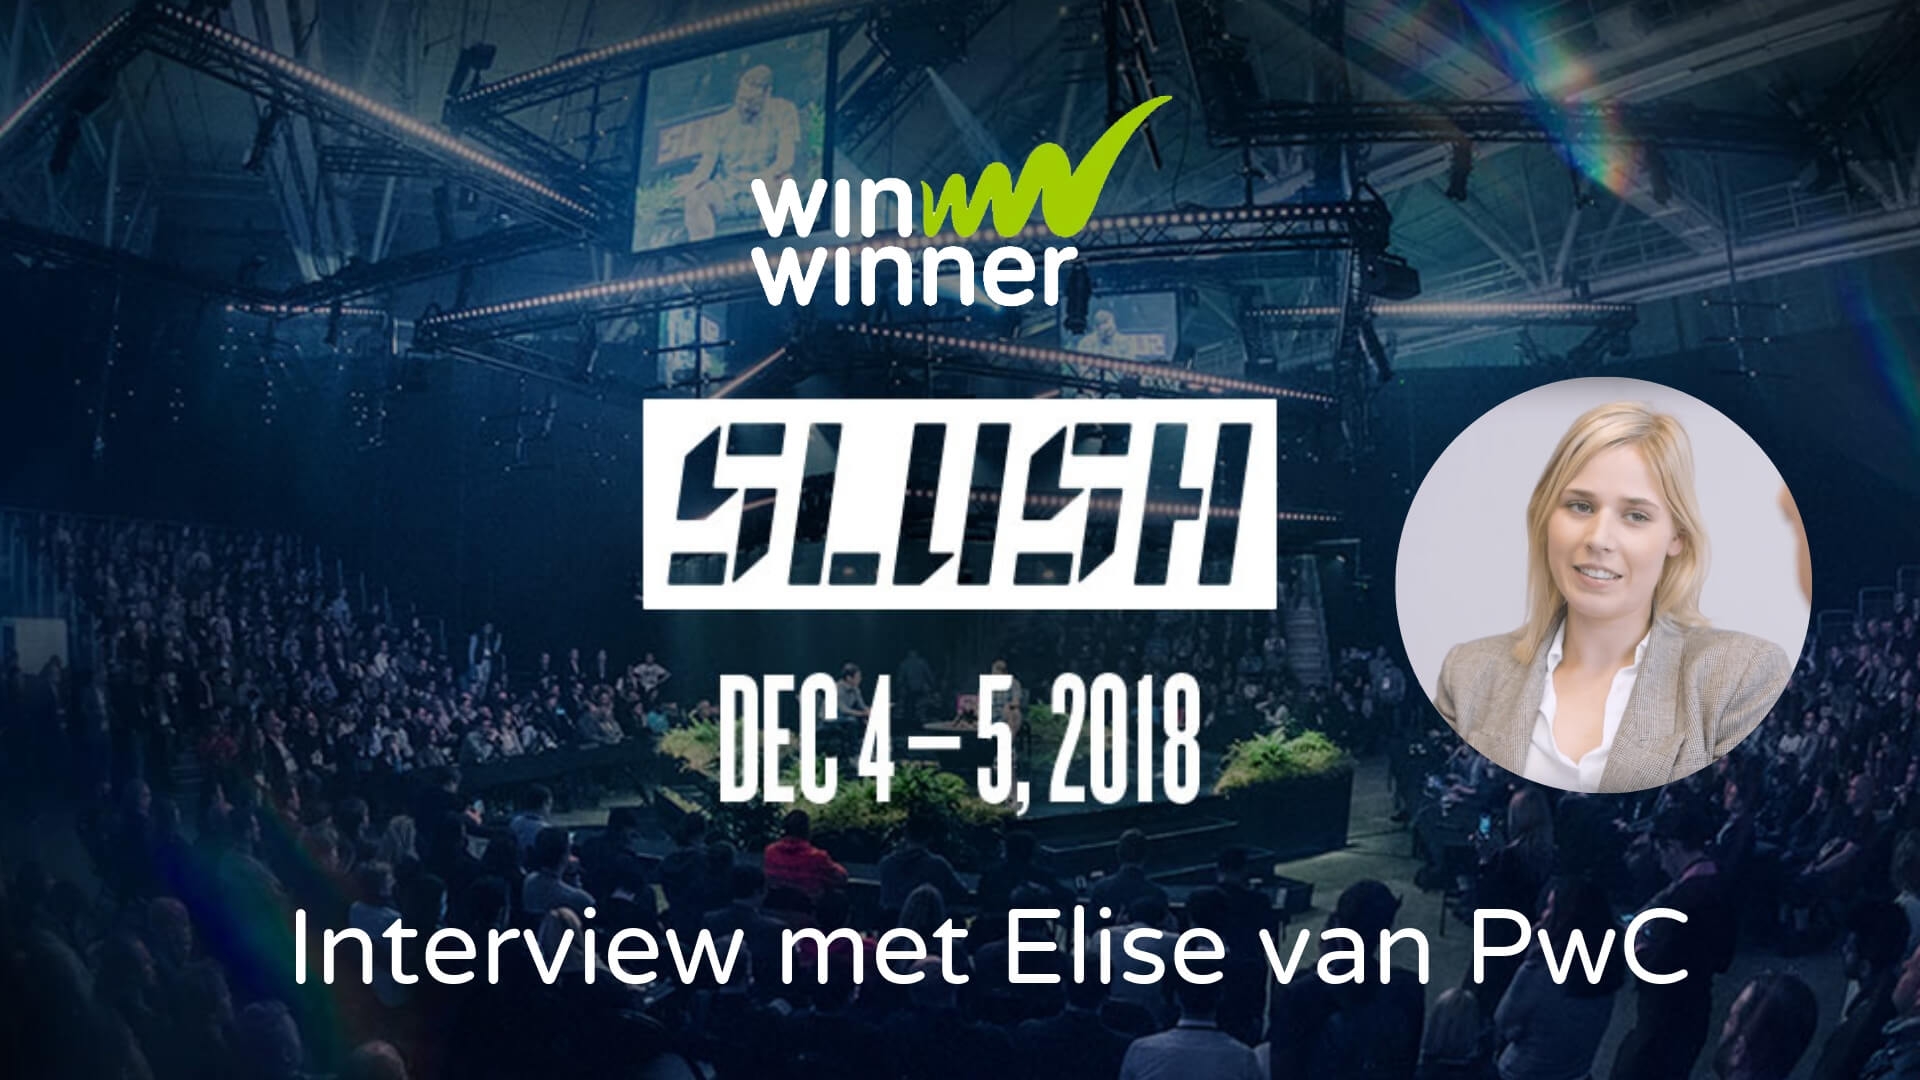 WinWinner @ Slush: Episode 3 - Interview met Elise van PwC